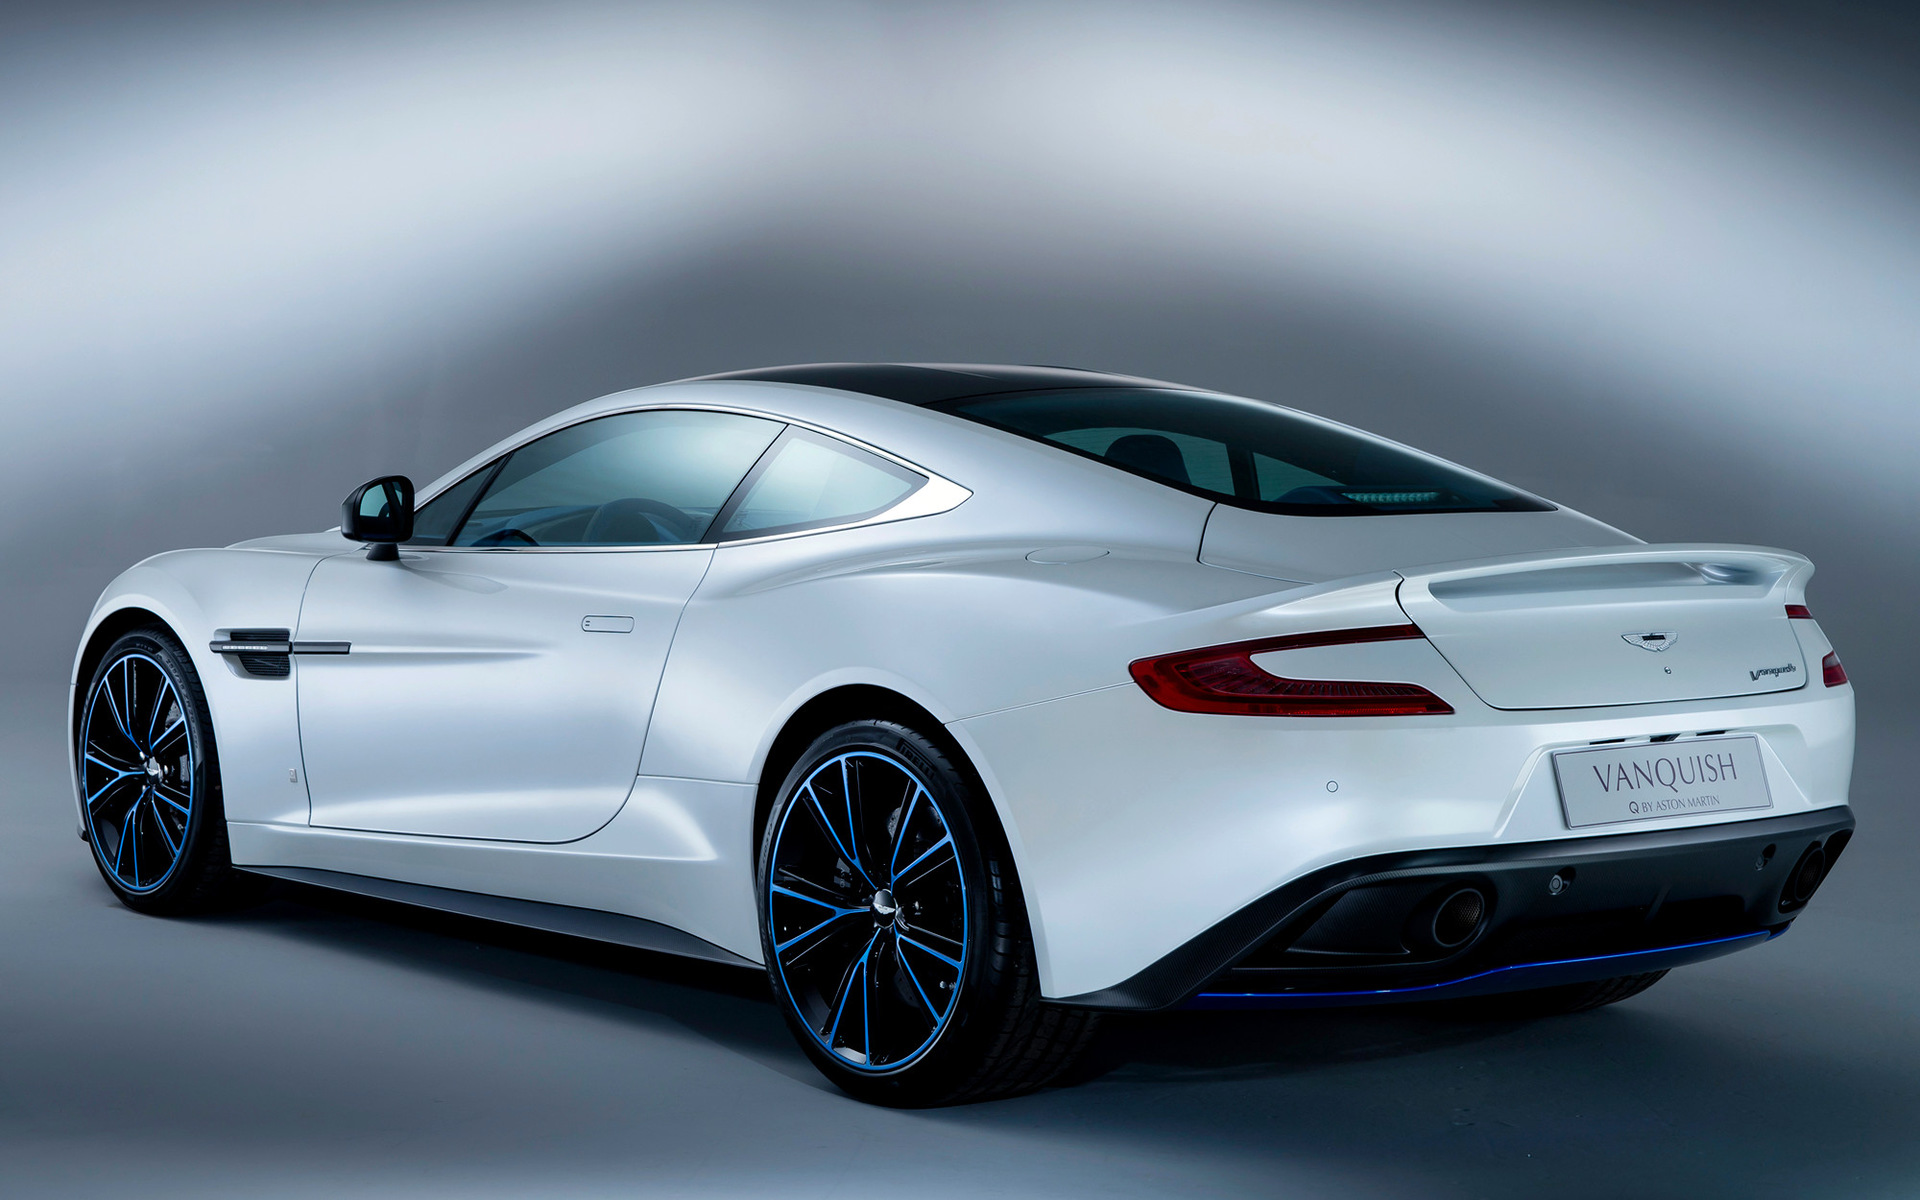 Best Looking Car Wallpaper 2013 Q By Aston Martin Vanquish Wallpapers And Hd Images